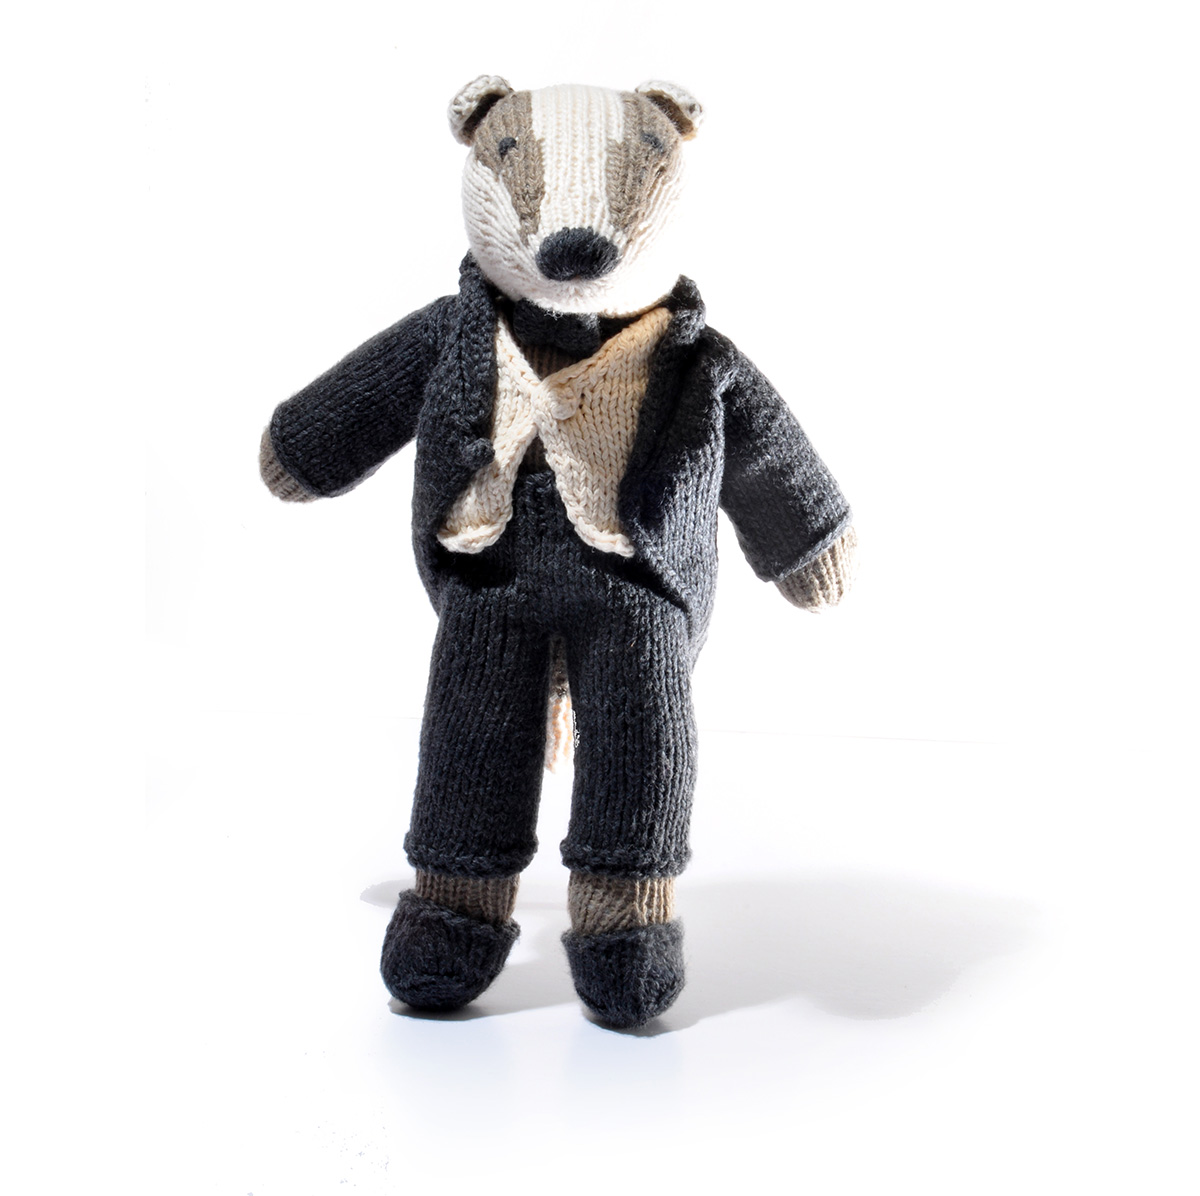 Badger Soft Toy in Morning Coat